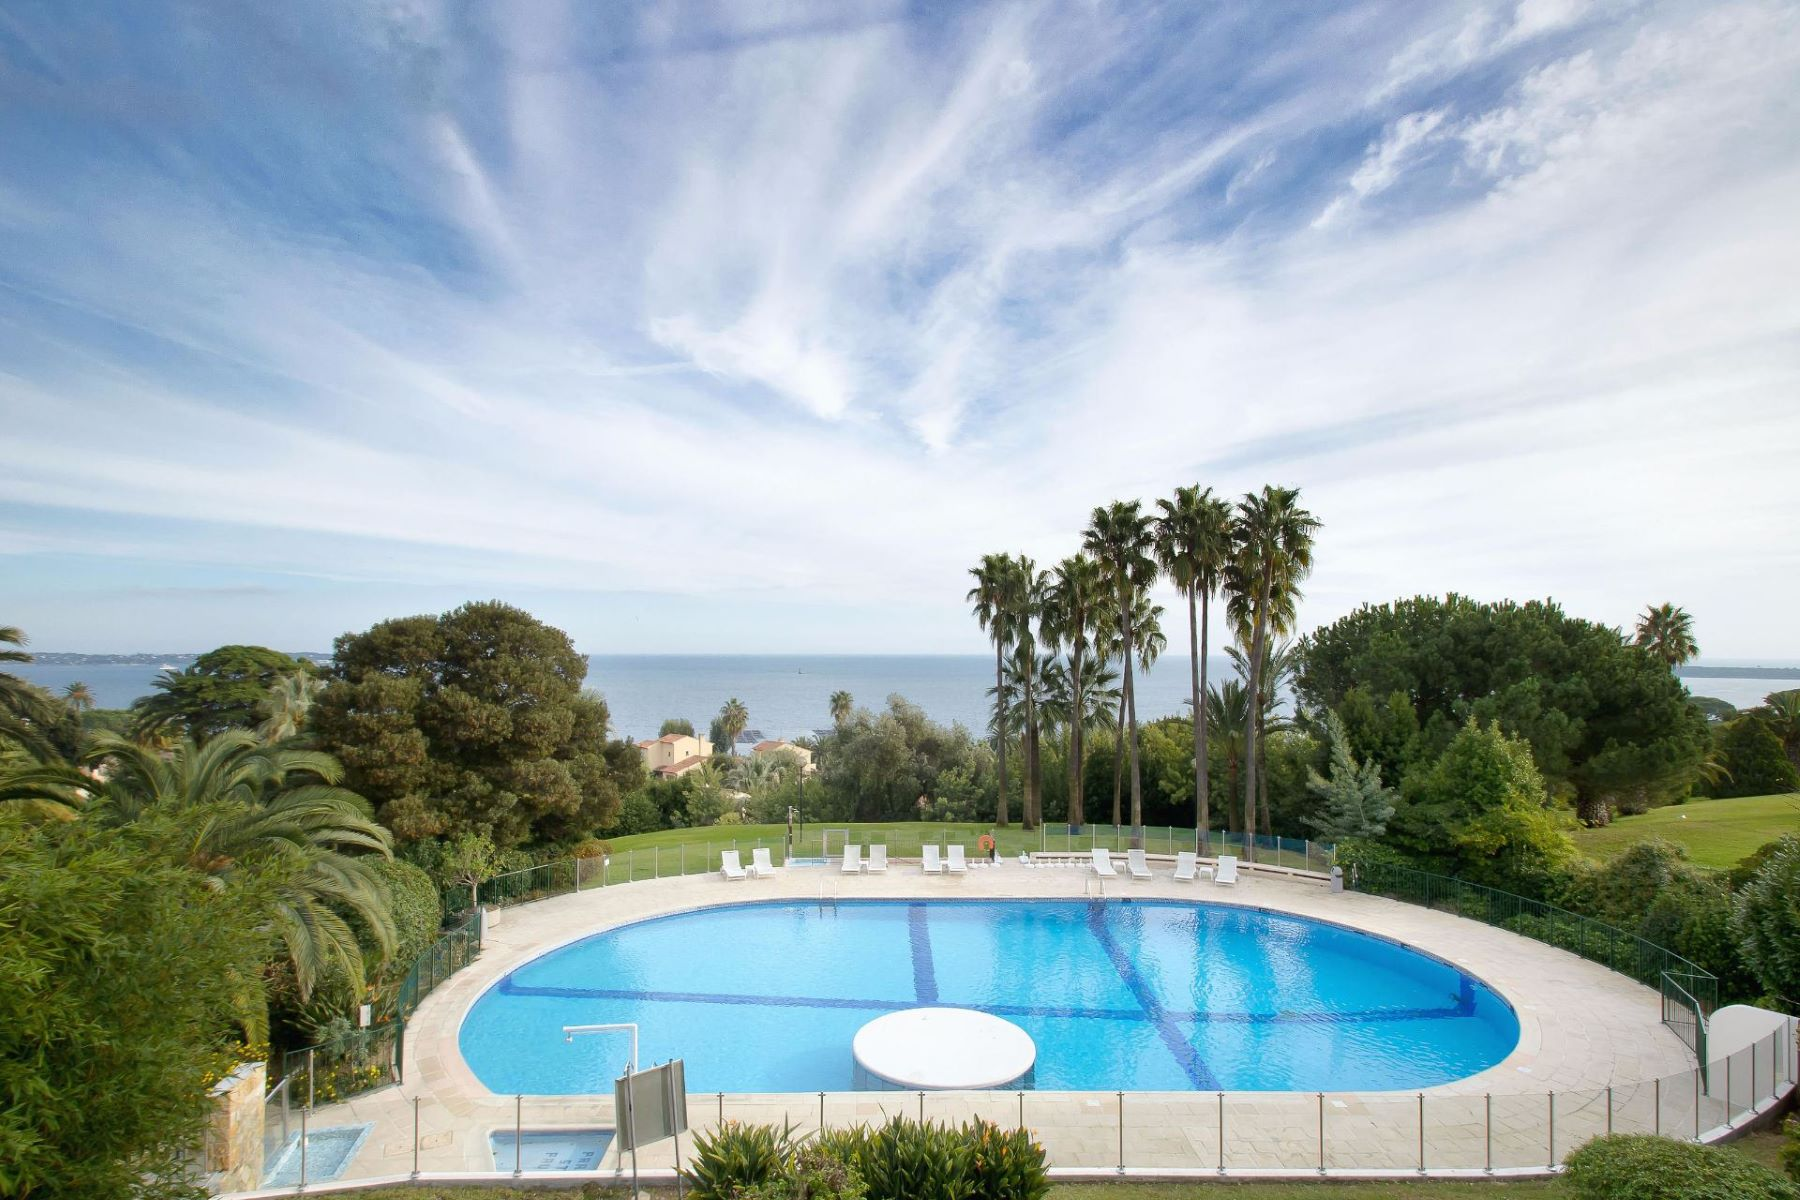 獨棟家庭住宅 為 出售 在 Quiet area - Cannes Californie - house for sale in a gated domain - sea views Cannes, 普羅旺斯阿爾卑斯藍色海岸, 06400 法國